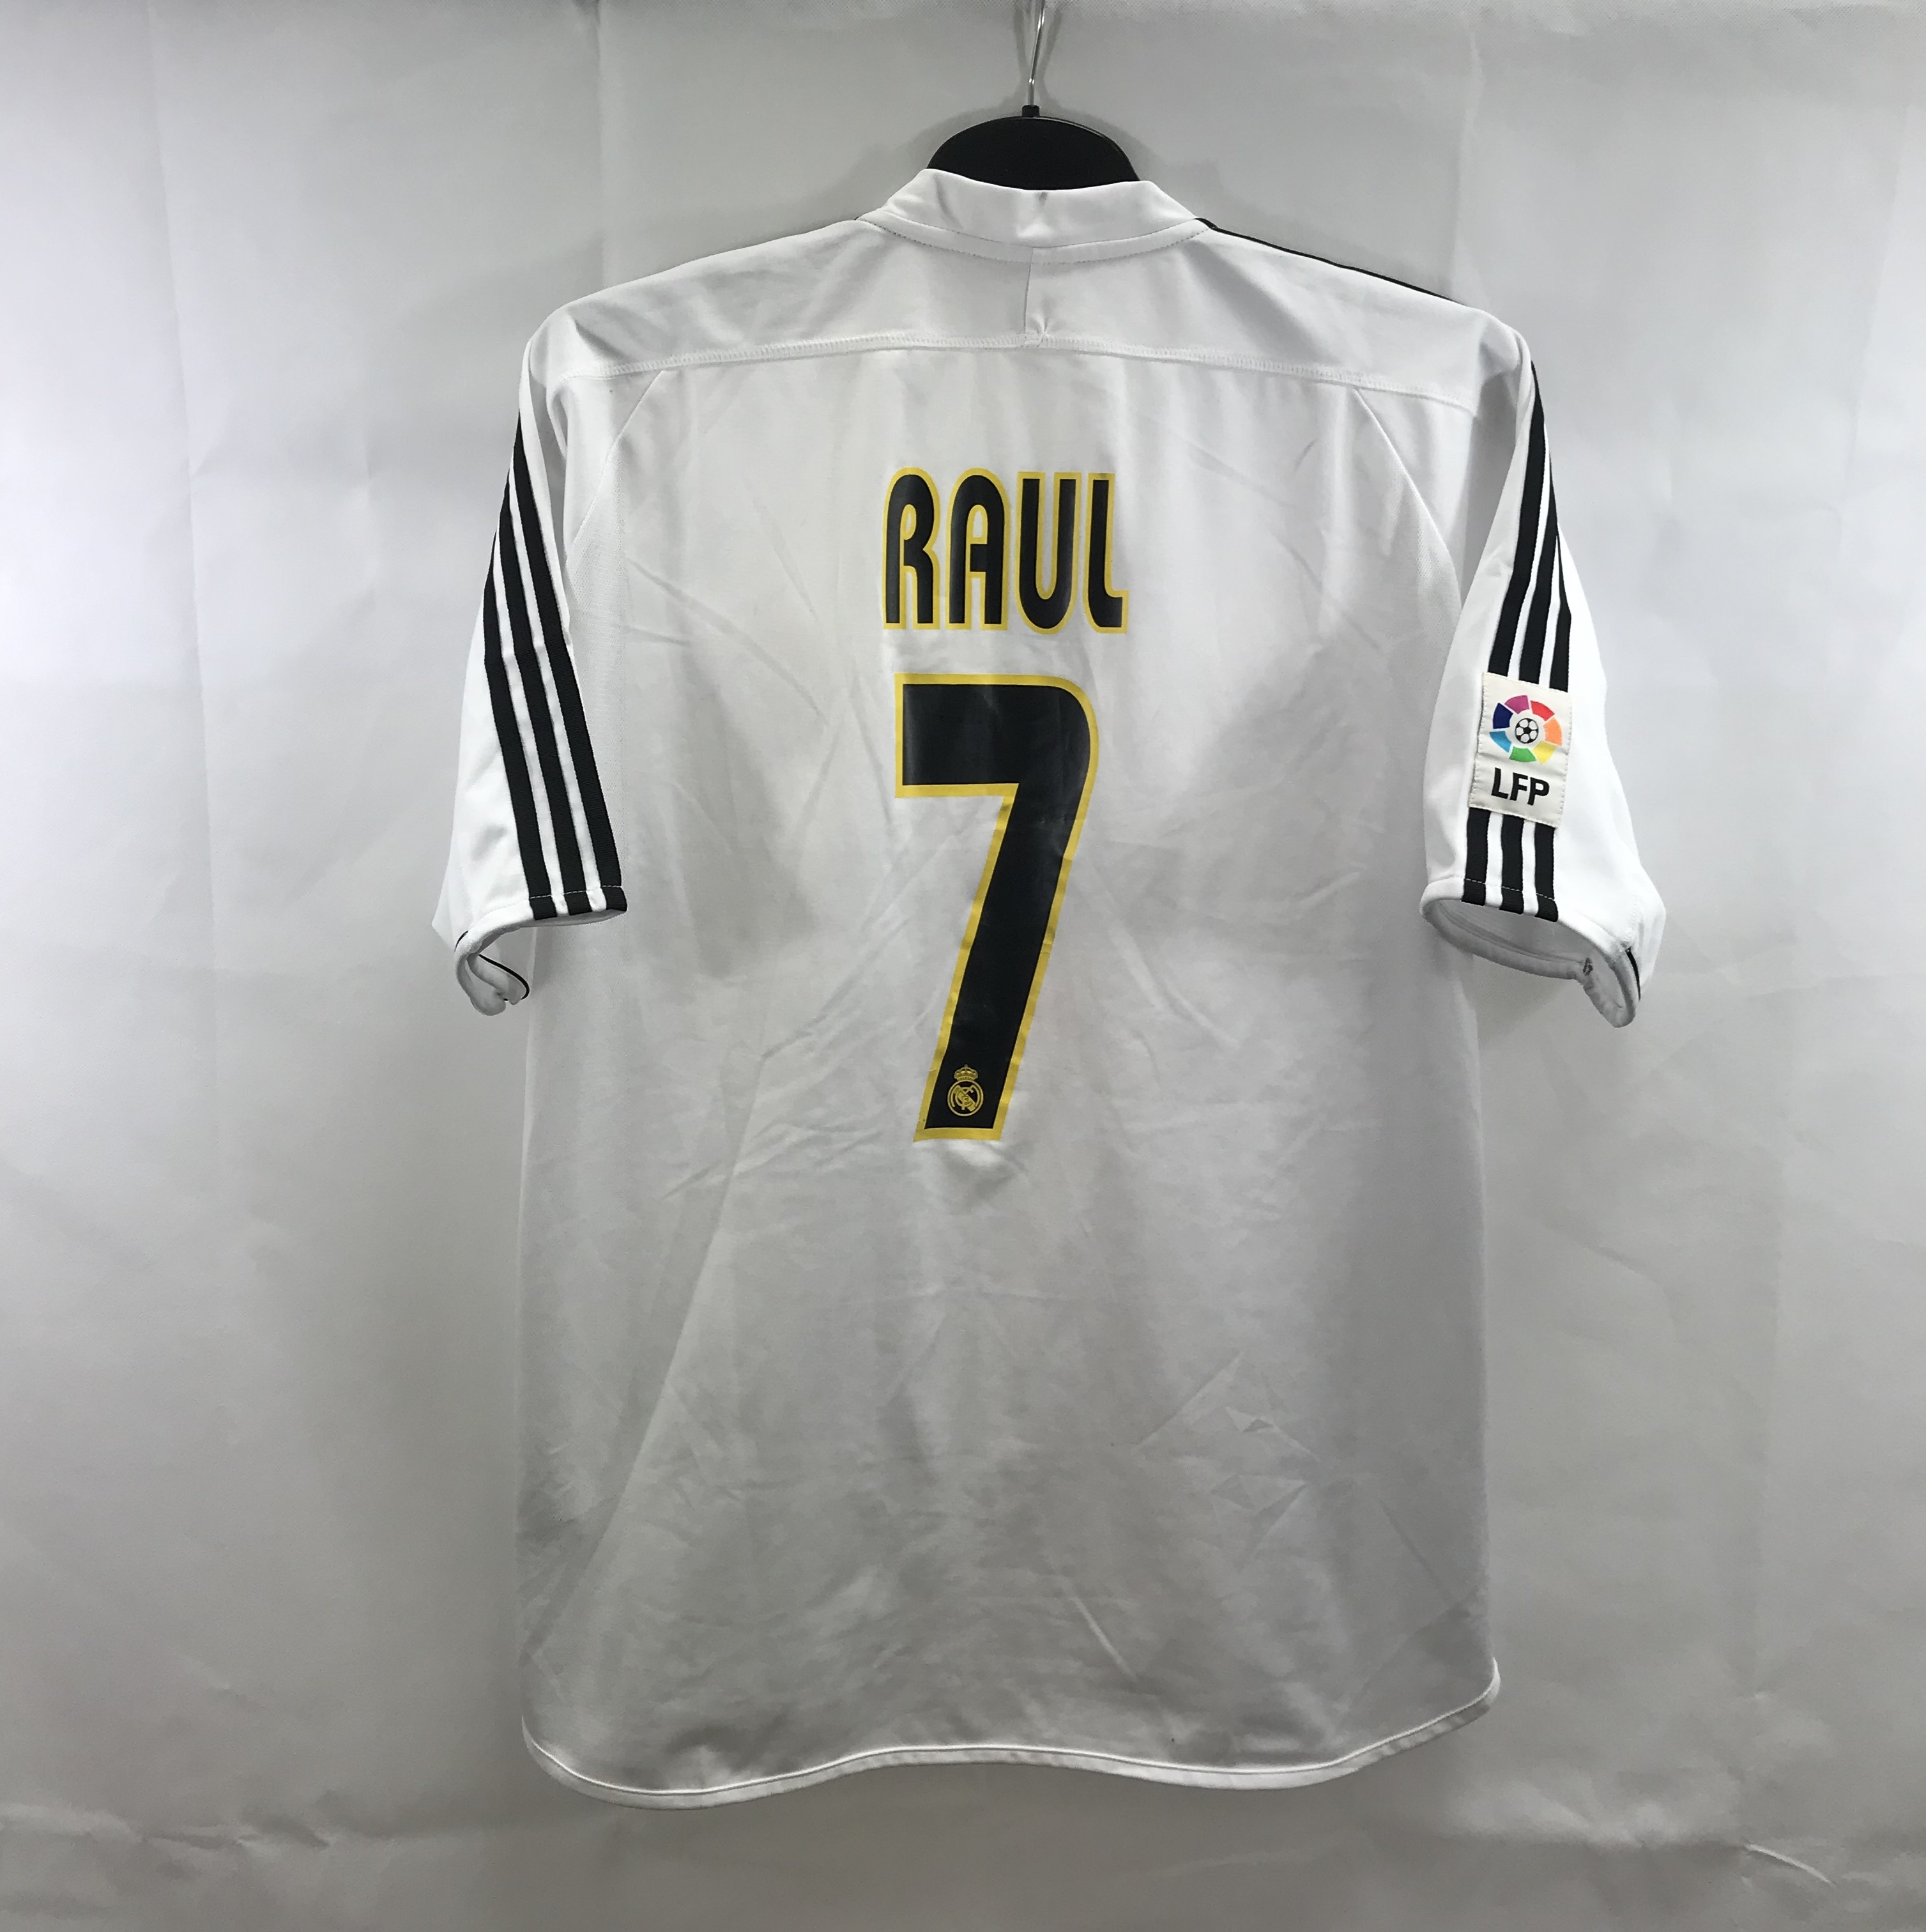 new concept ef6eb 9779b Real Madrid Raul 7 Home Football Shirt 2003/04 Adults XL Adidas